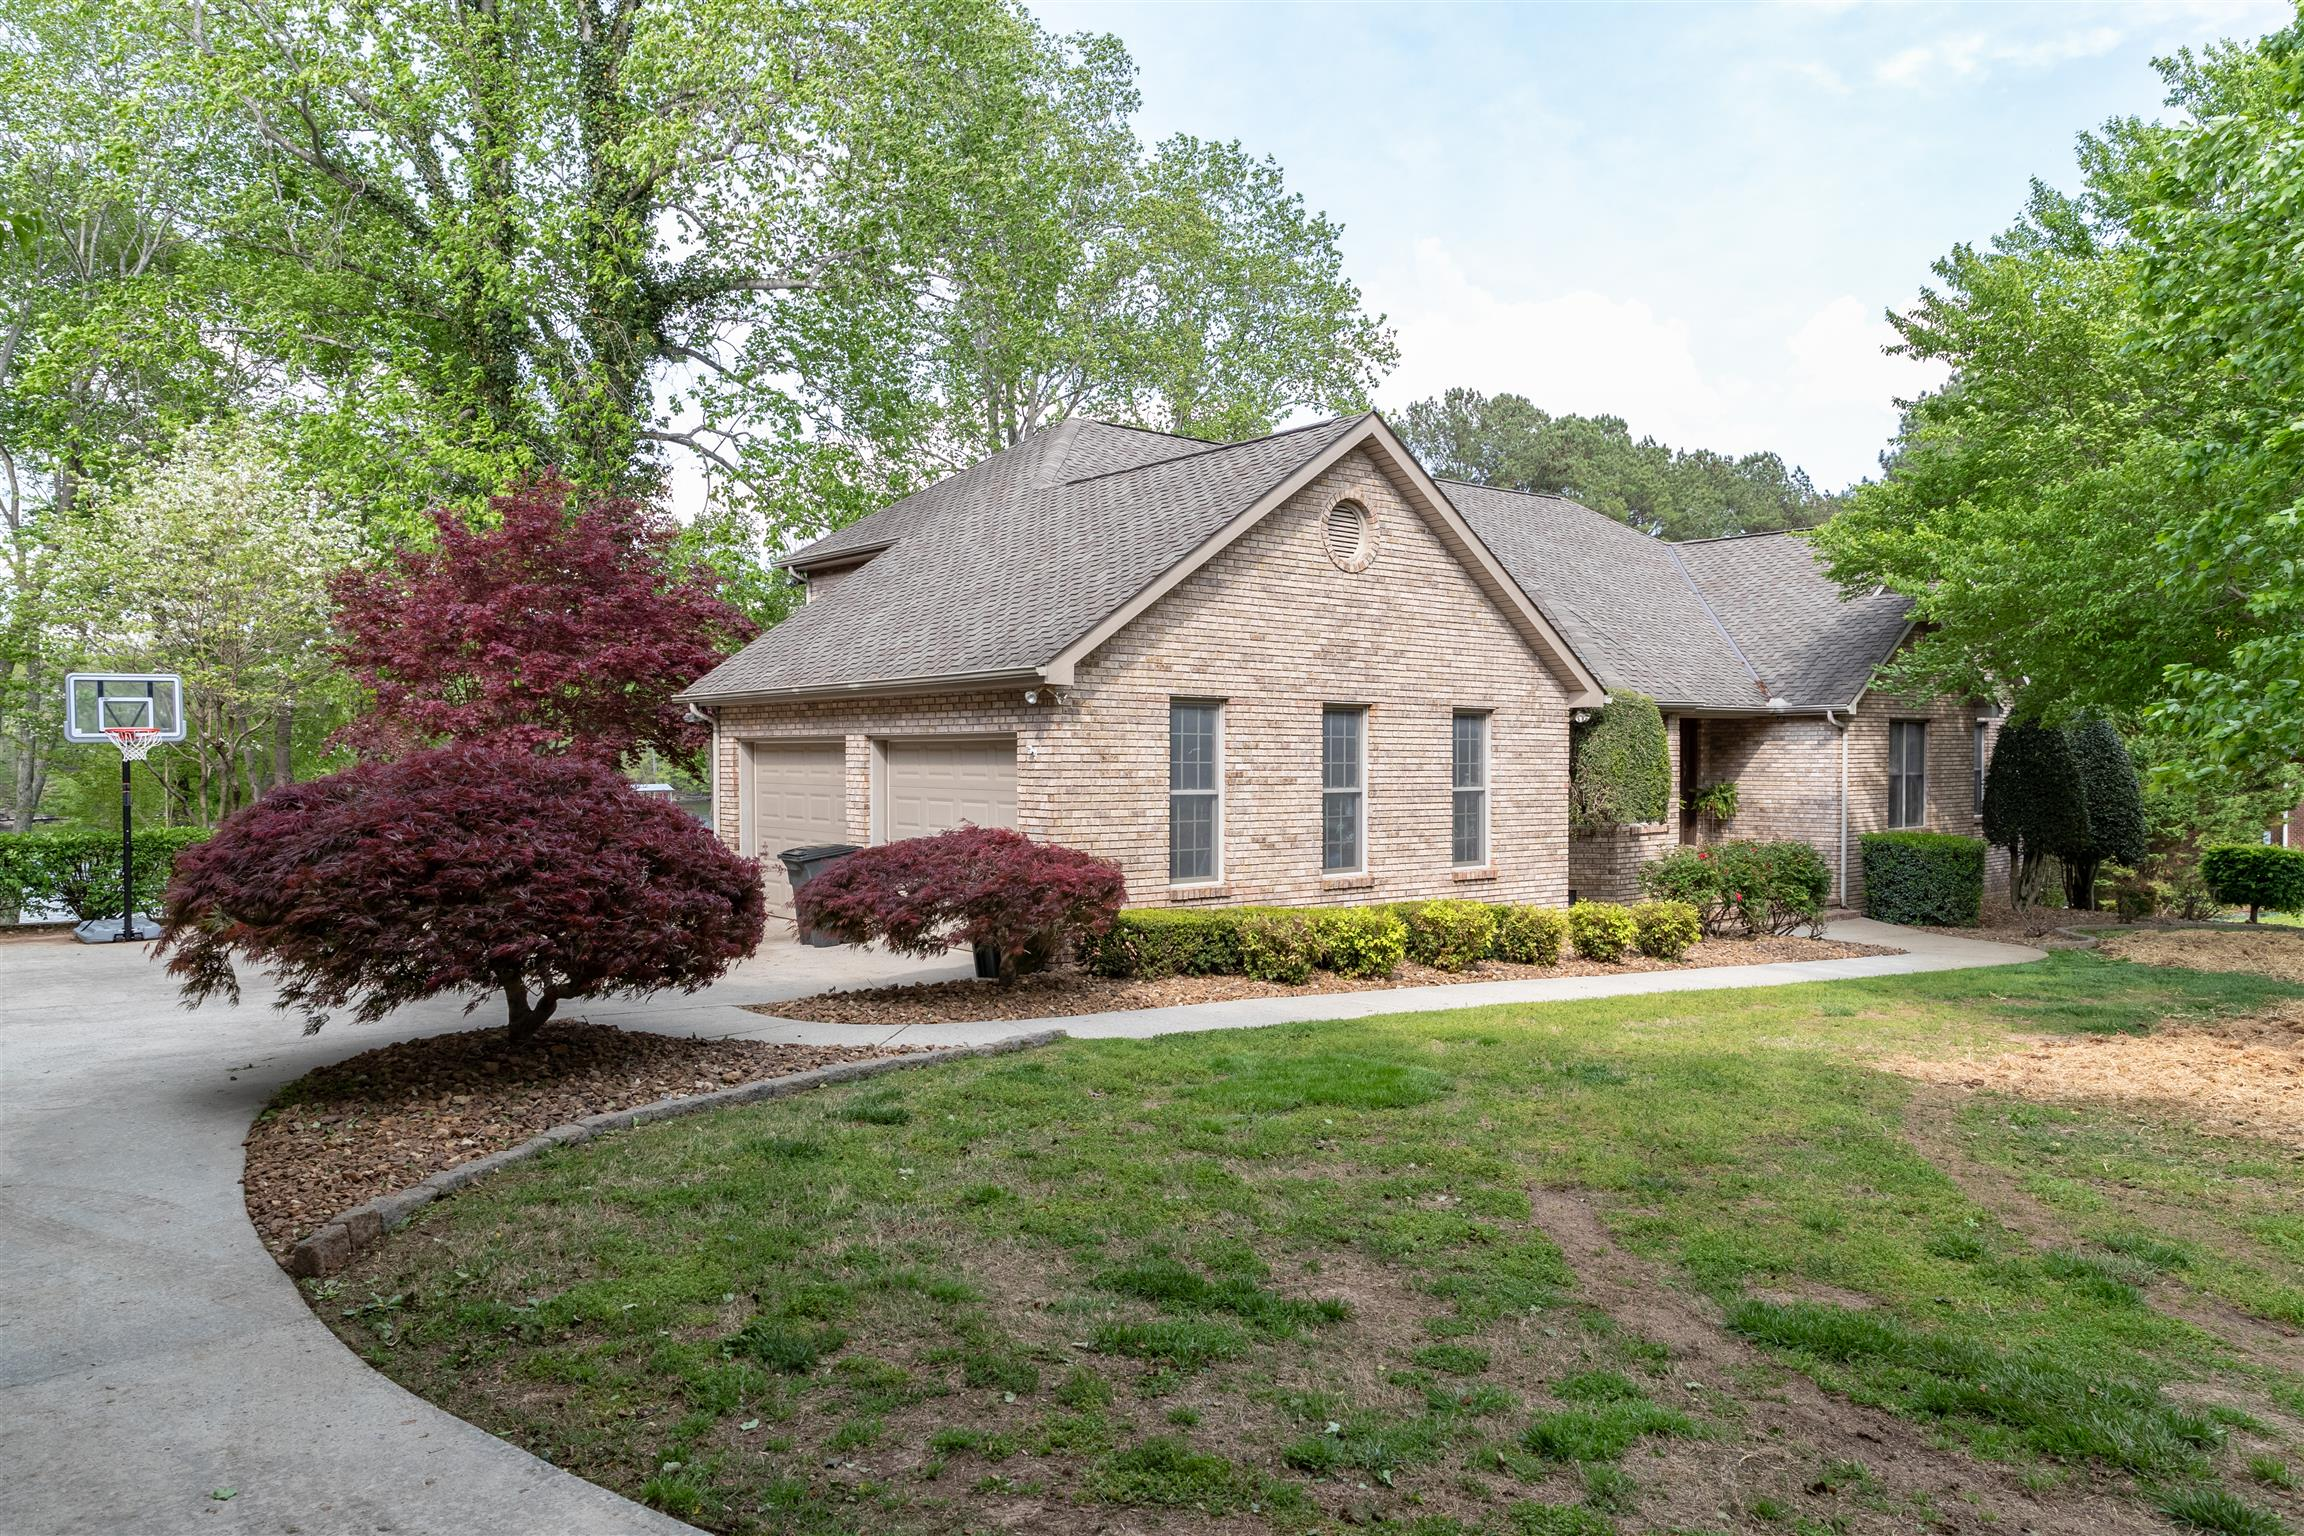 1342 Heather Way, Estill Springs, TN 37330 - Estill Springs, TN real estate listing